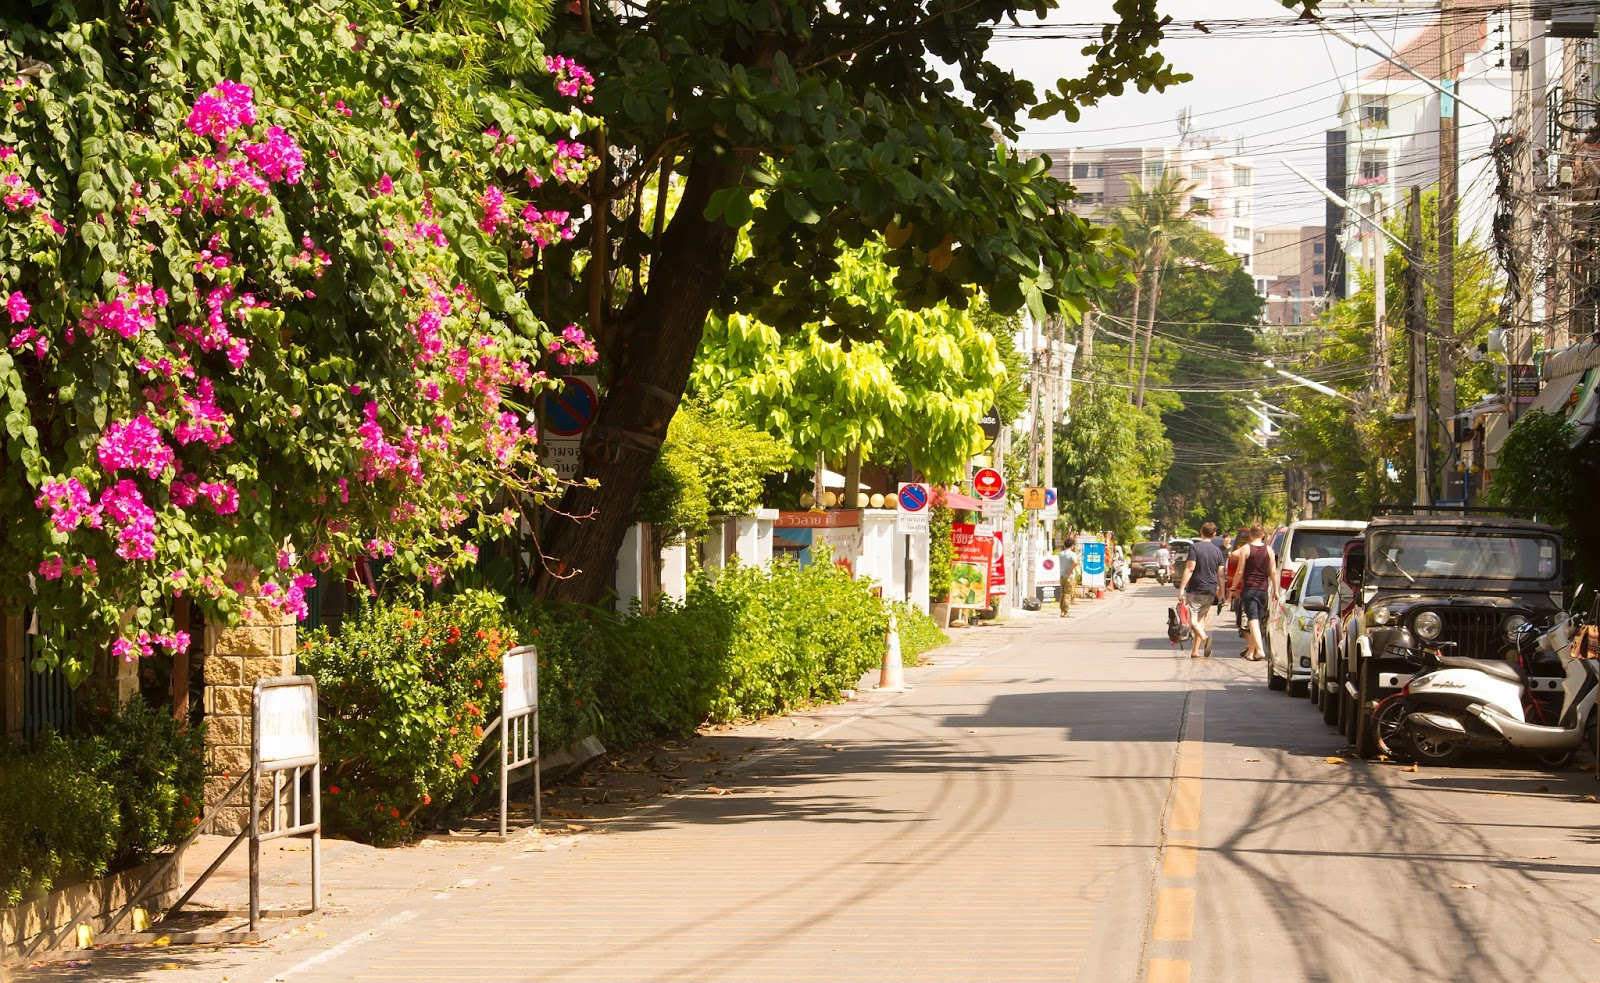 Streets of Chiang Mai, Thailand